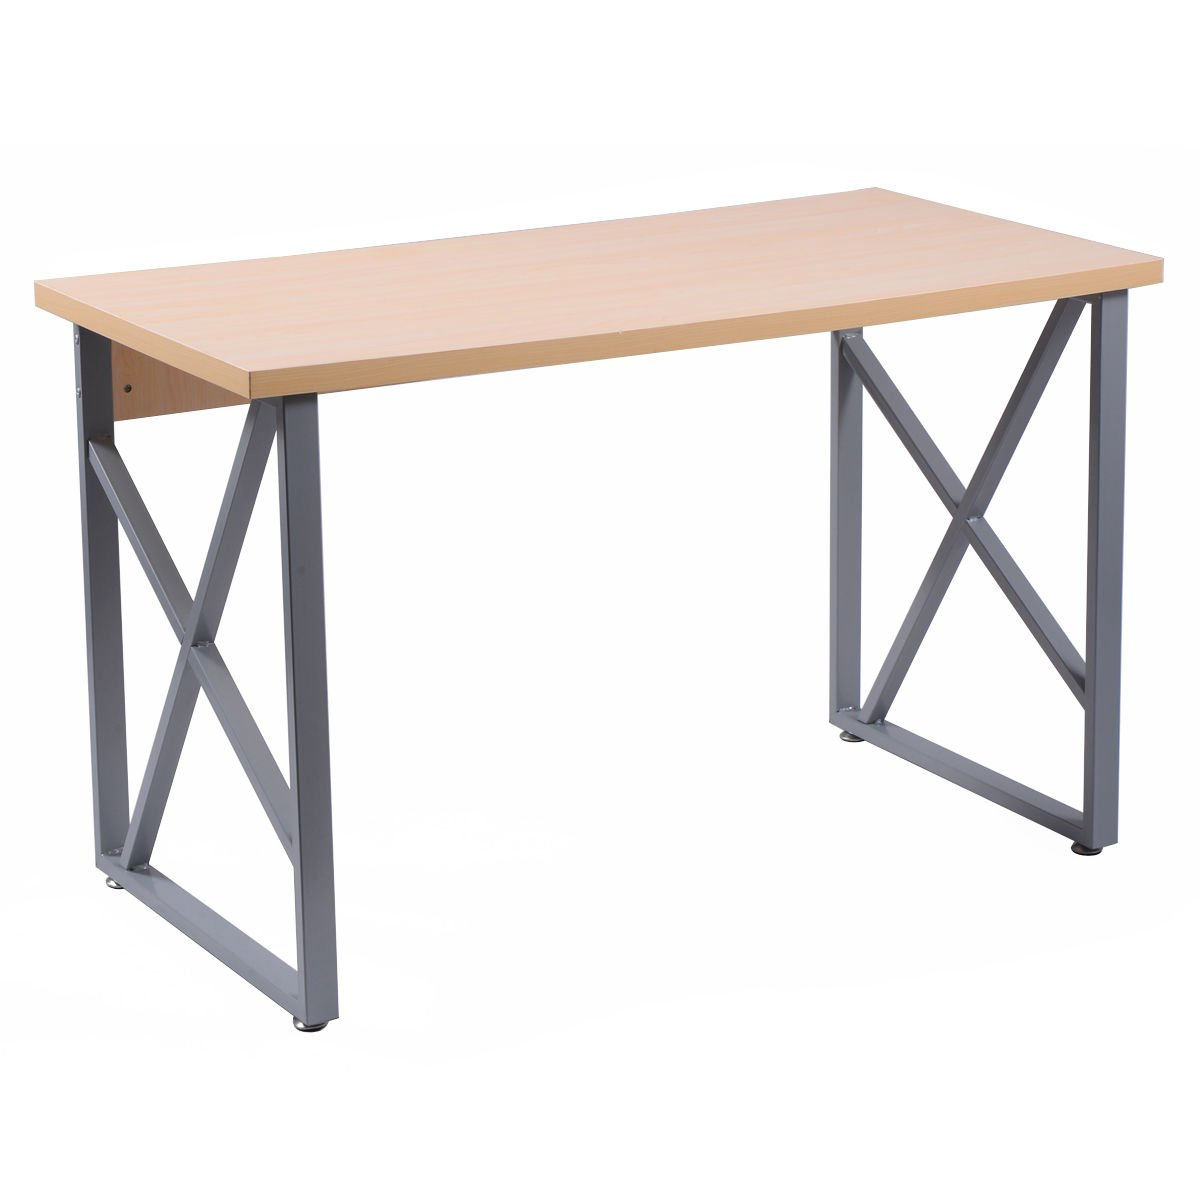 NEW Wooden color Computer Desk PC Laptop Table Writing Study Workstation Home Office Furniture